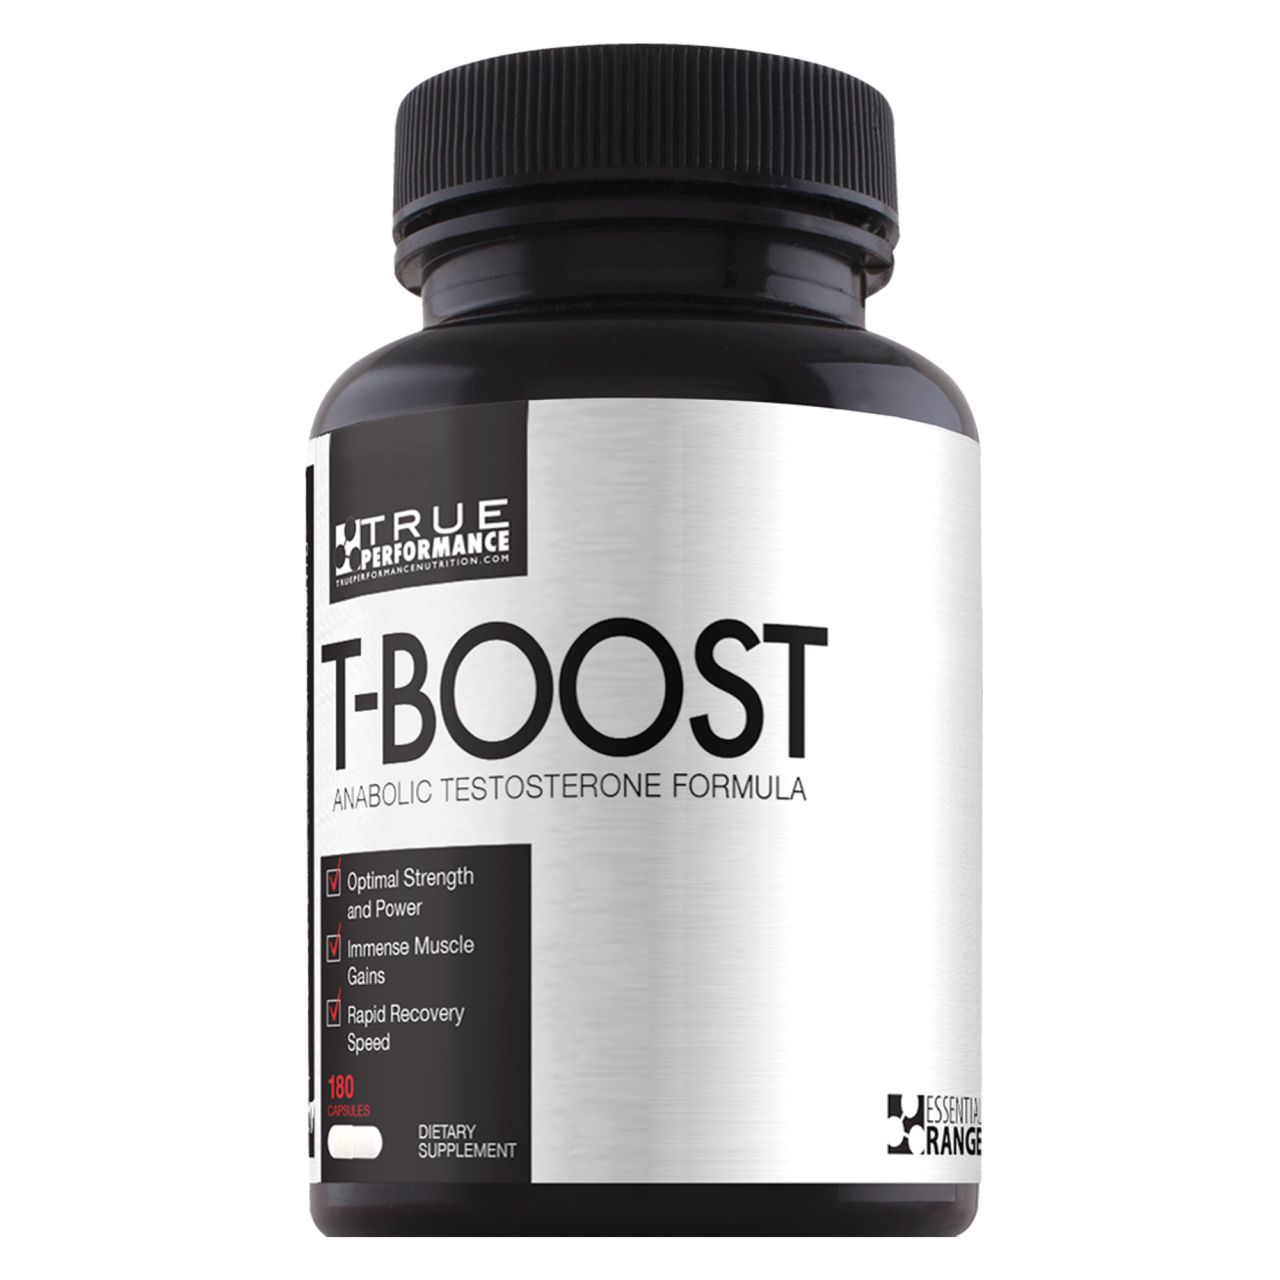 T-boost reviews